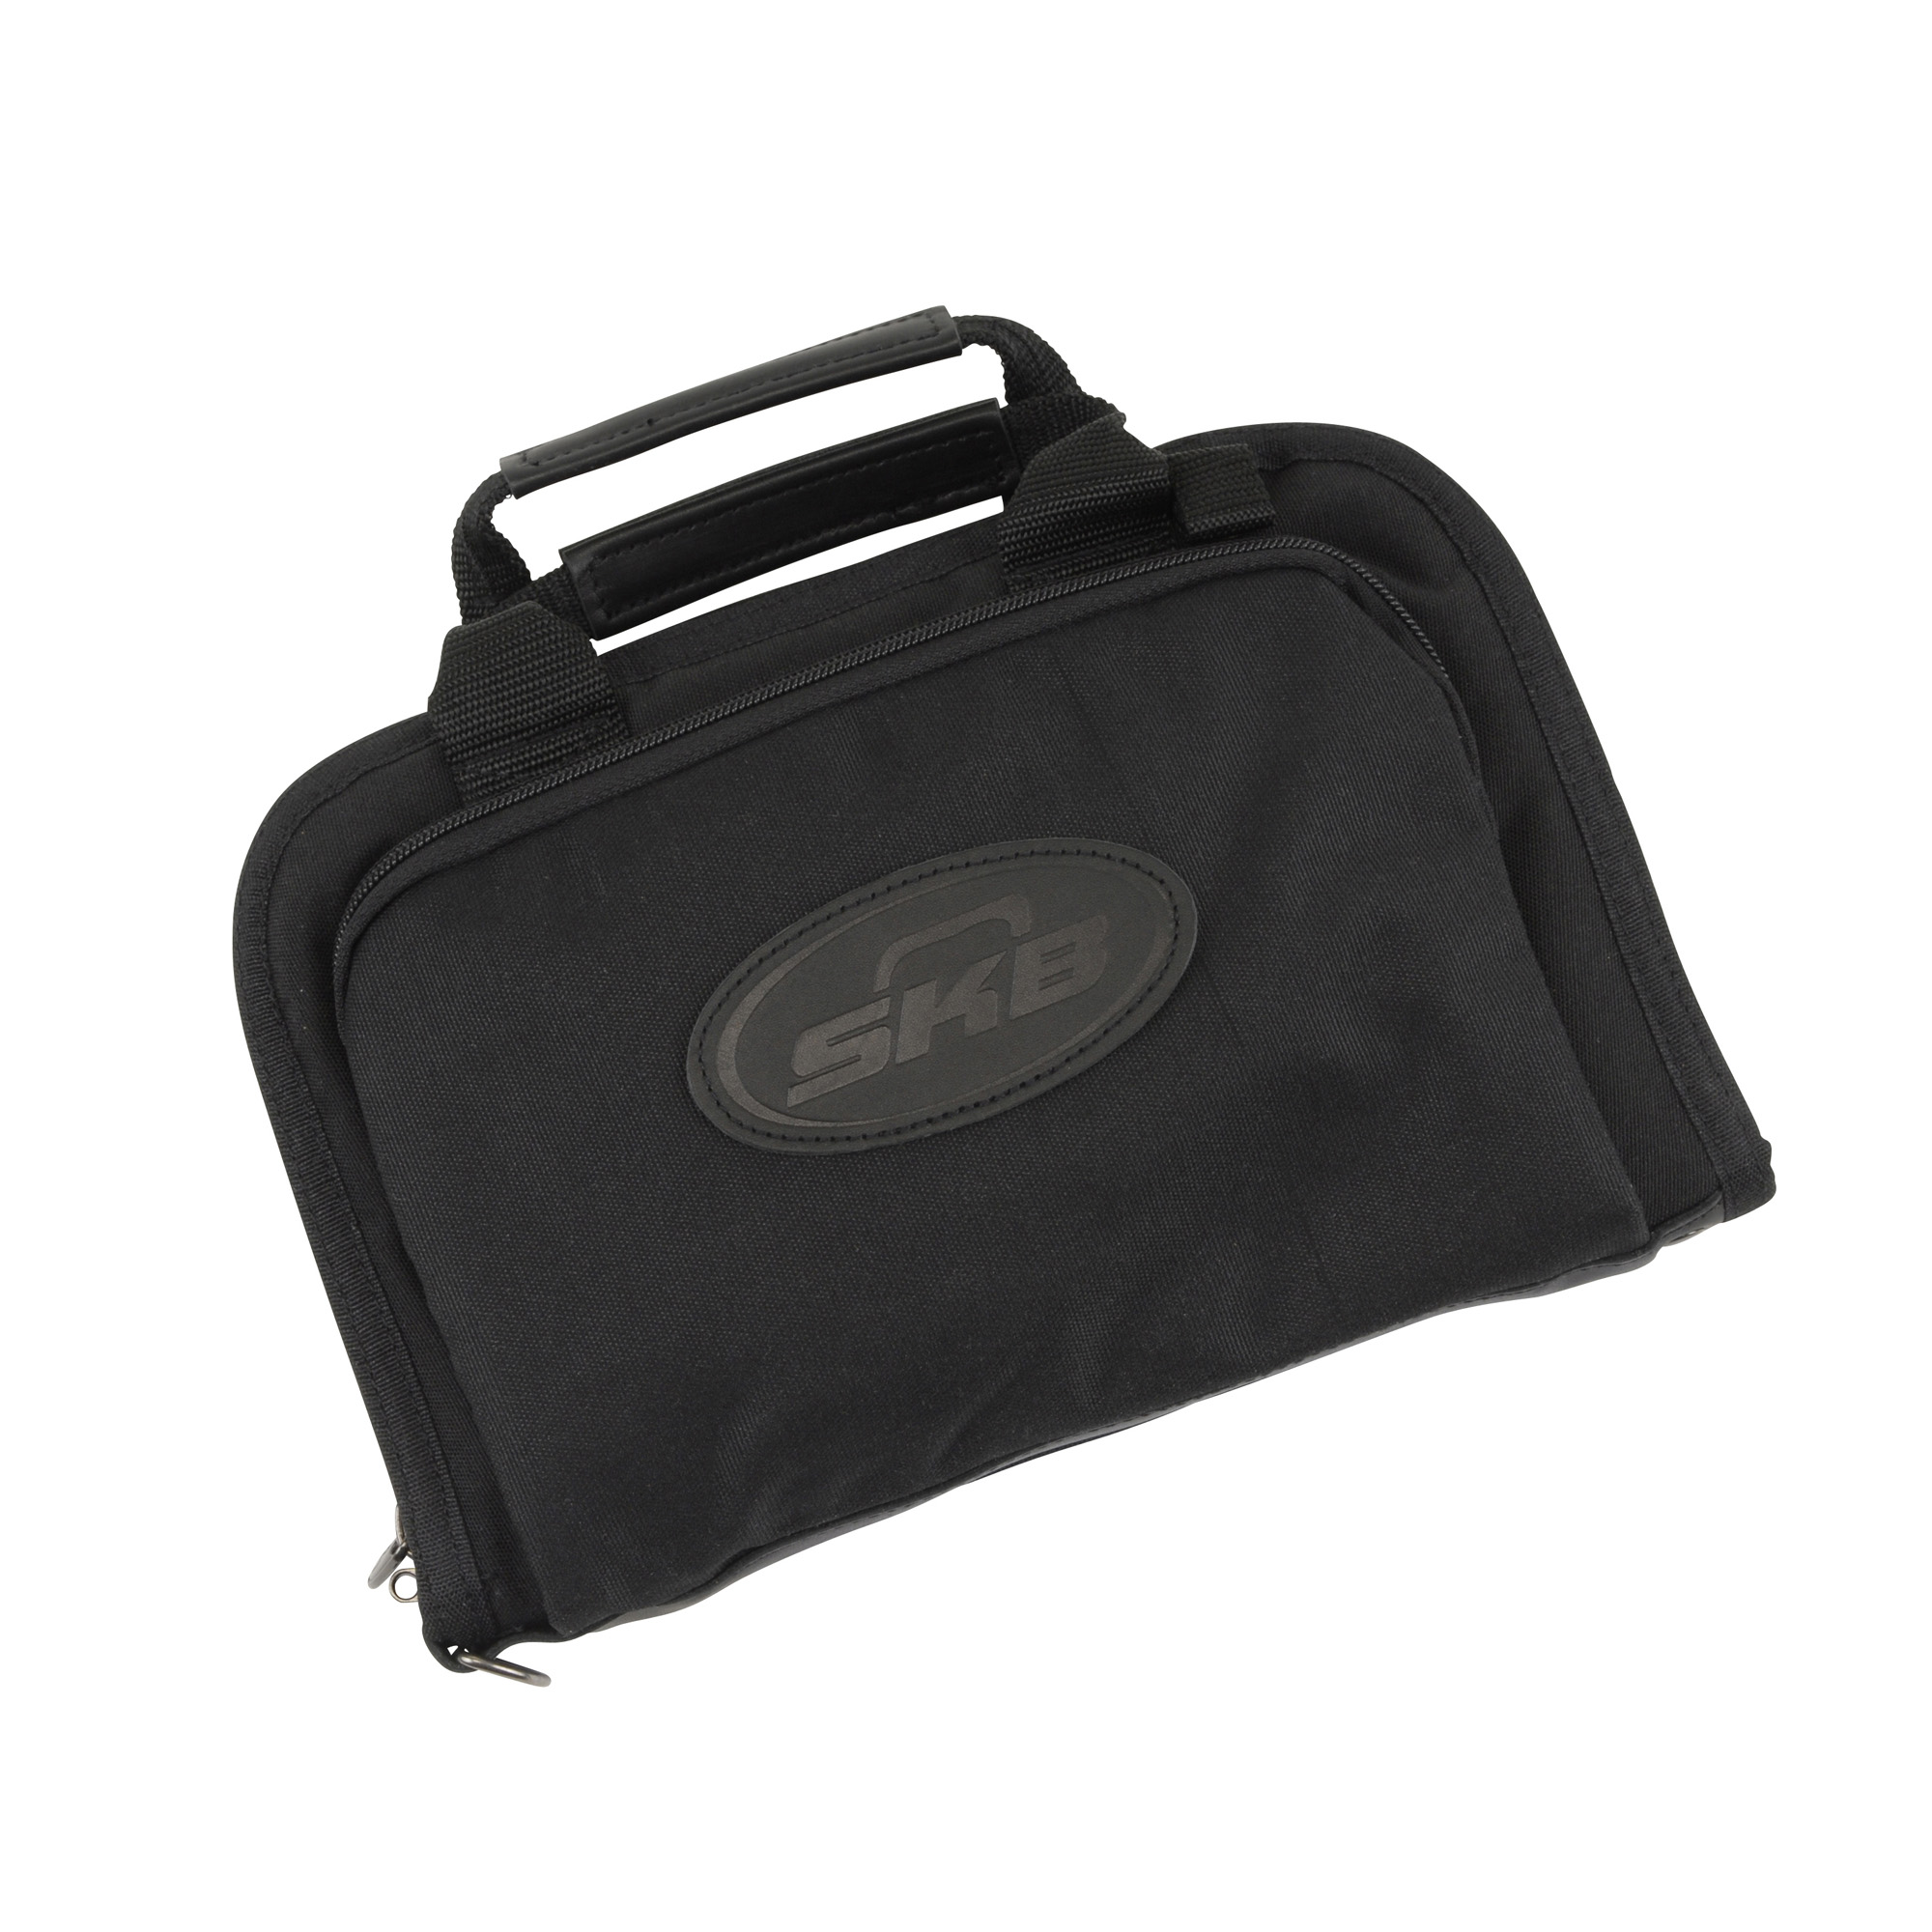 """The SKB Dry-Tek Rectangular Handgun Bags feature the patented """"Dry-Tek Difference"""". The two-layer padding will work in tandem to draw moisture from the inner bag. The inner pad layer enables water to pass through to the outer layer where a remarkable one-way laminate membrane applied to the outer layer allows water molecules to exit the bag"""" but not to enter. The result"""" your gun stays dry!"""